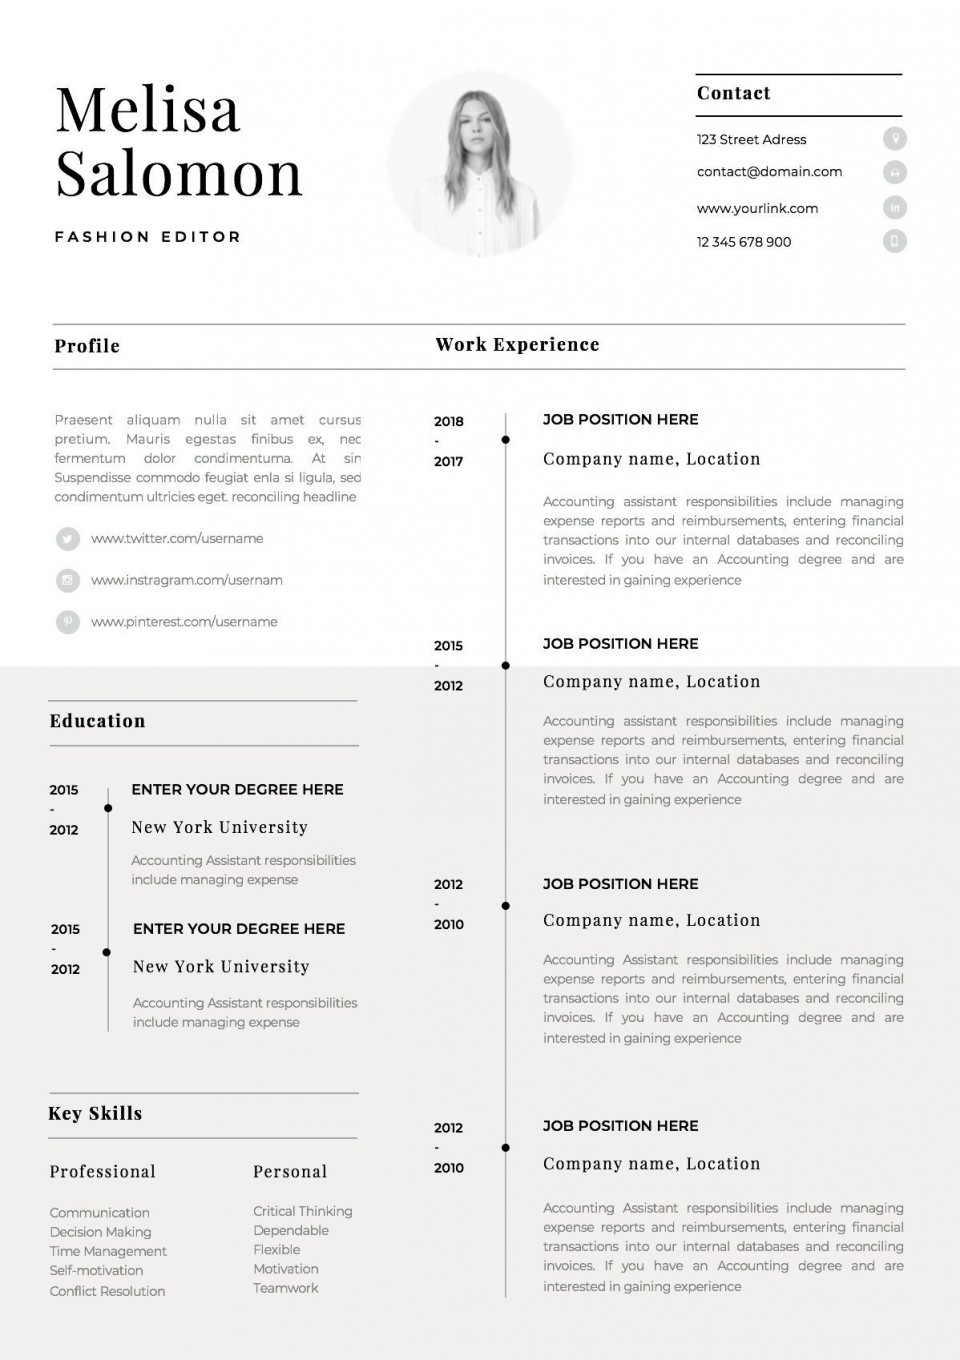 002 Singular Single Page Resume Template Sample  Cascade One Free Download Word For Fresher960